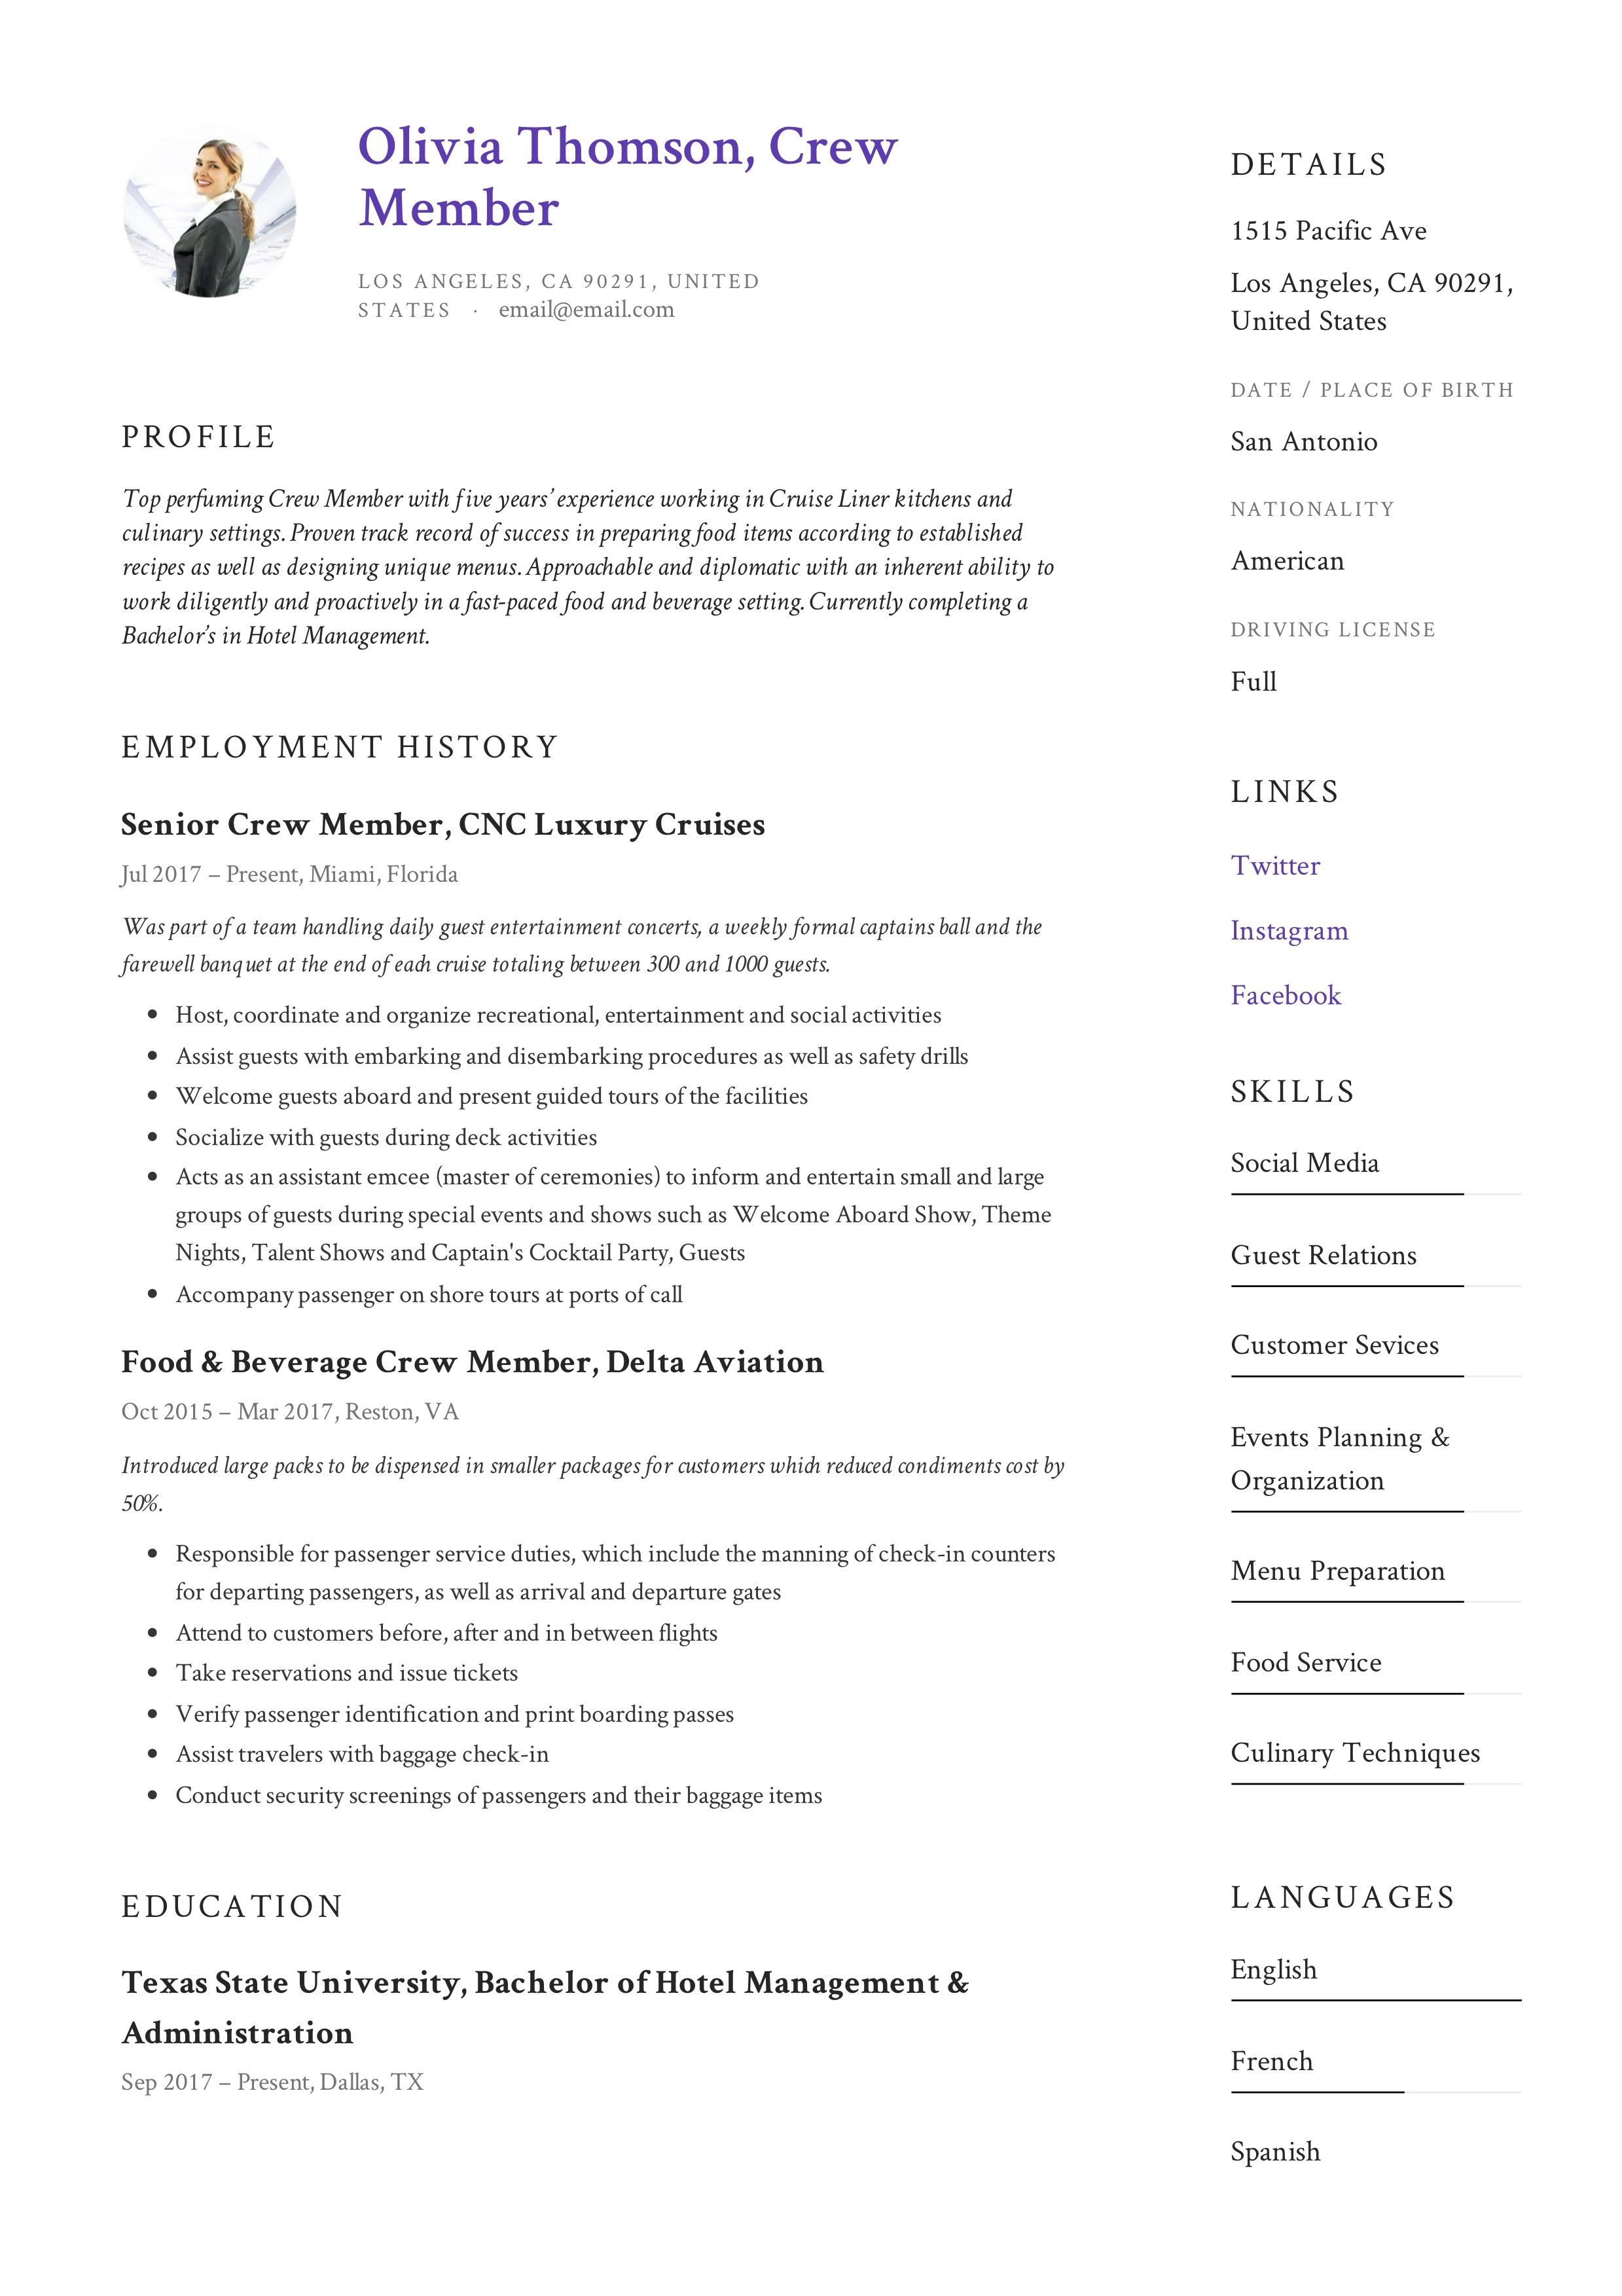 Crew member resume example in 2020 guided writing